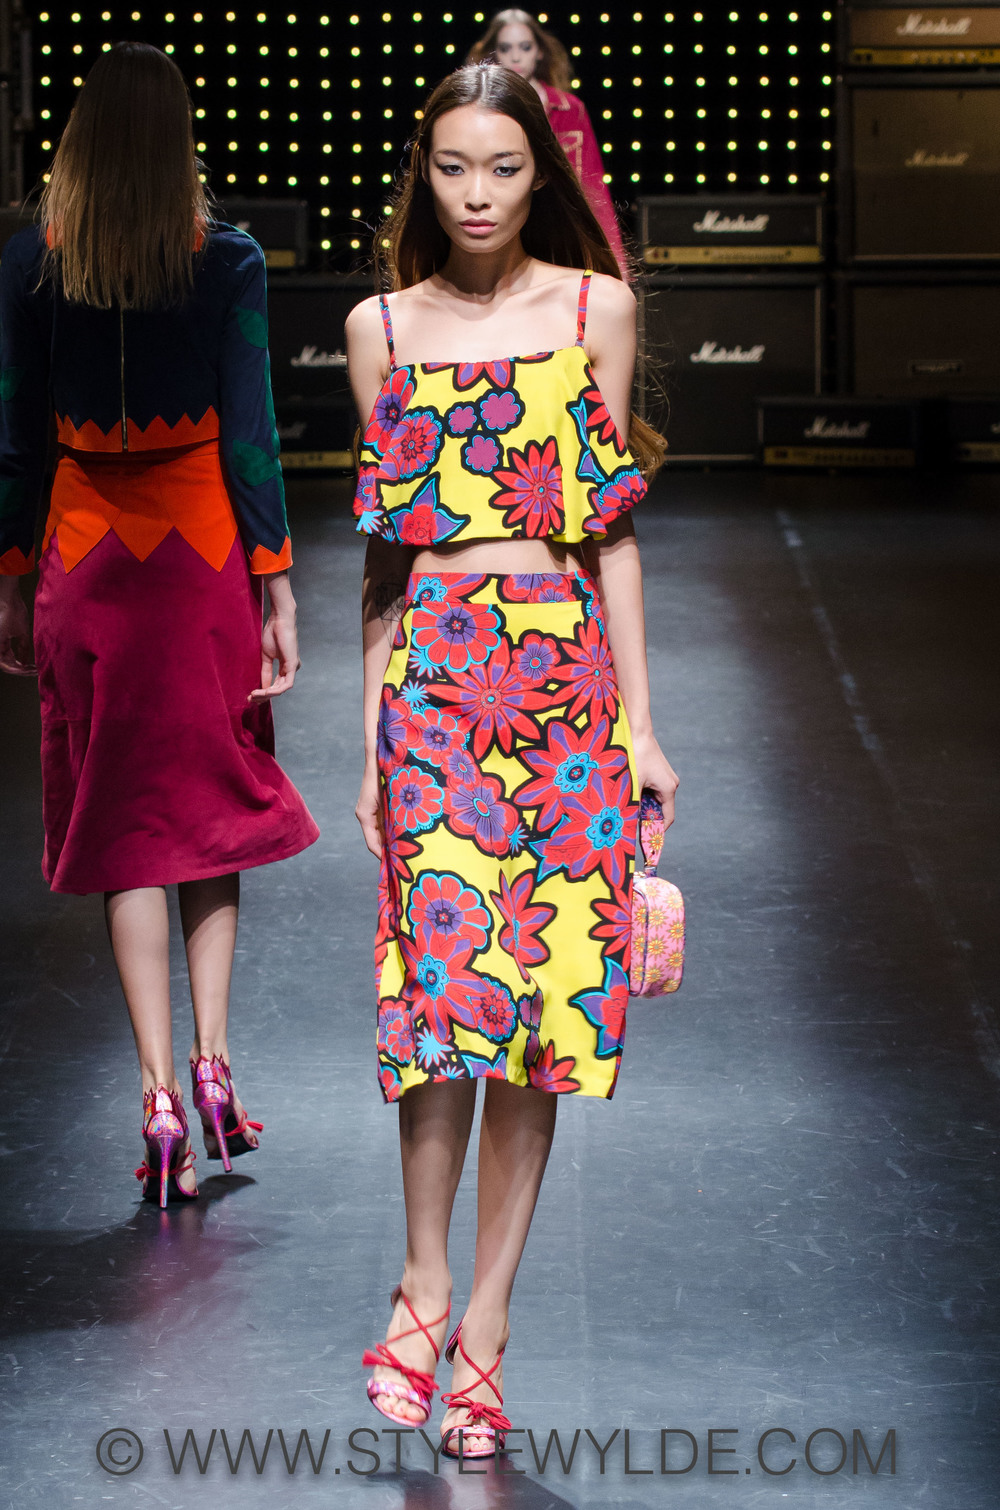 stylewylde_HouseofHolland_SS15 (9 of 68).jpg